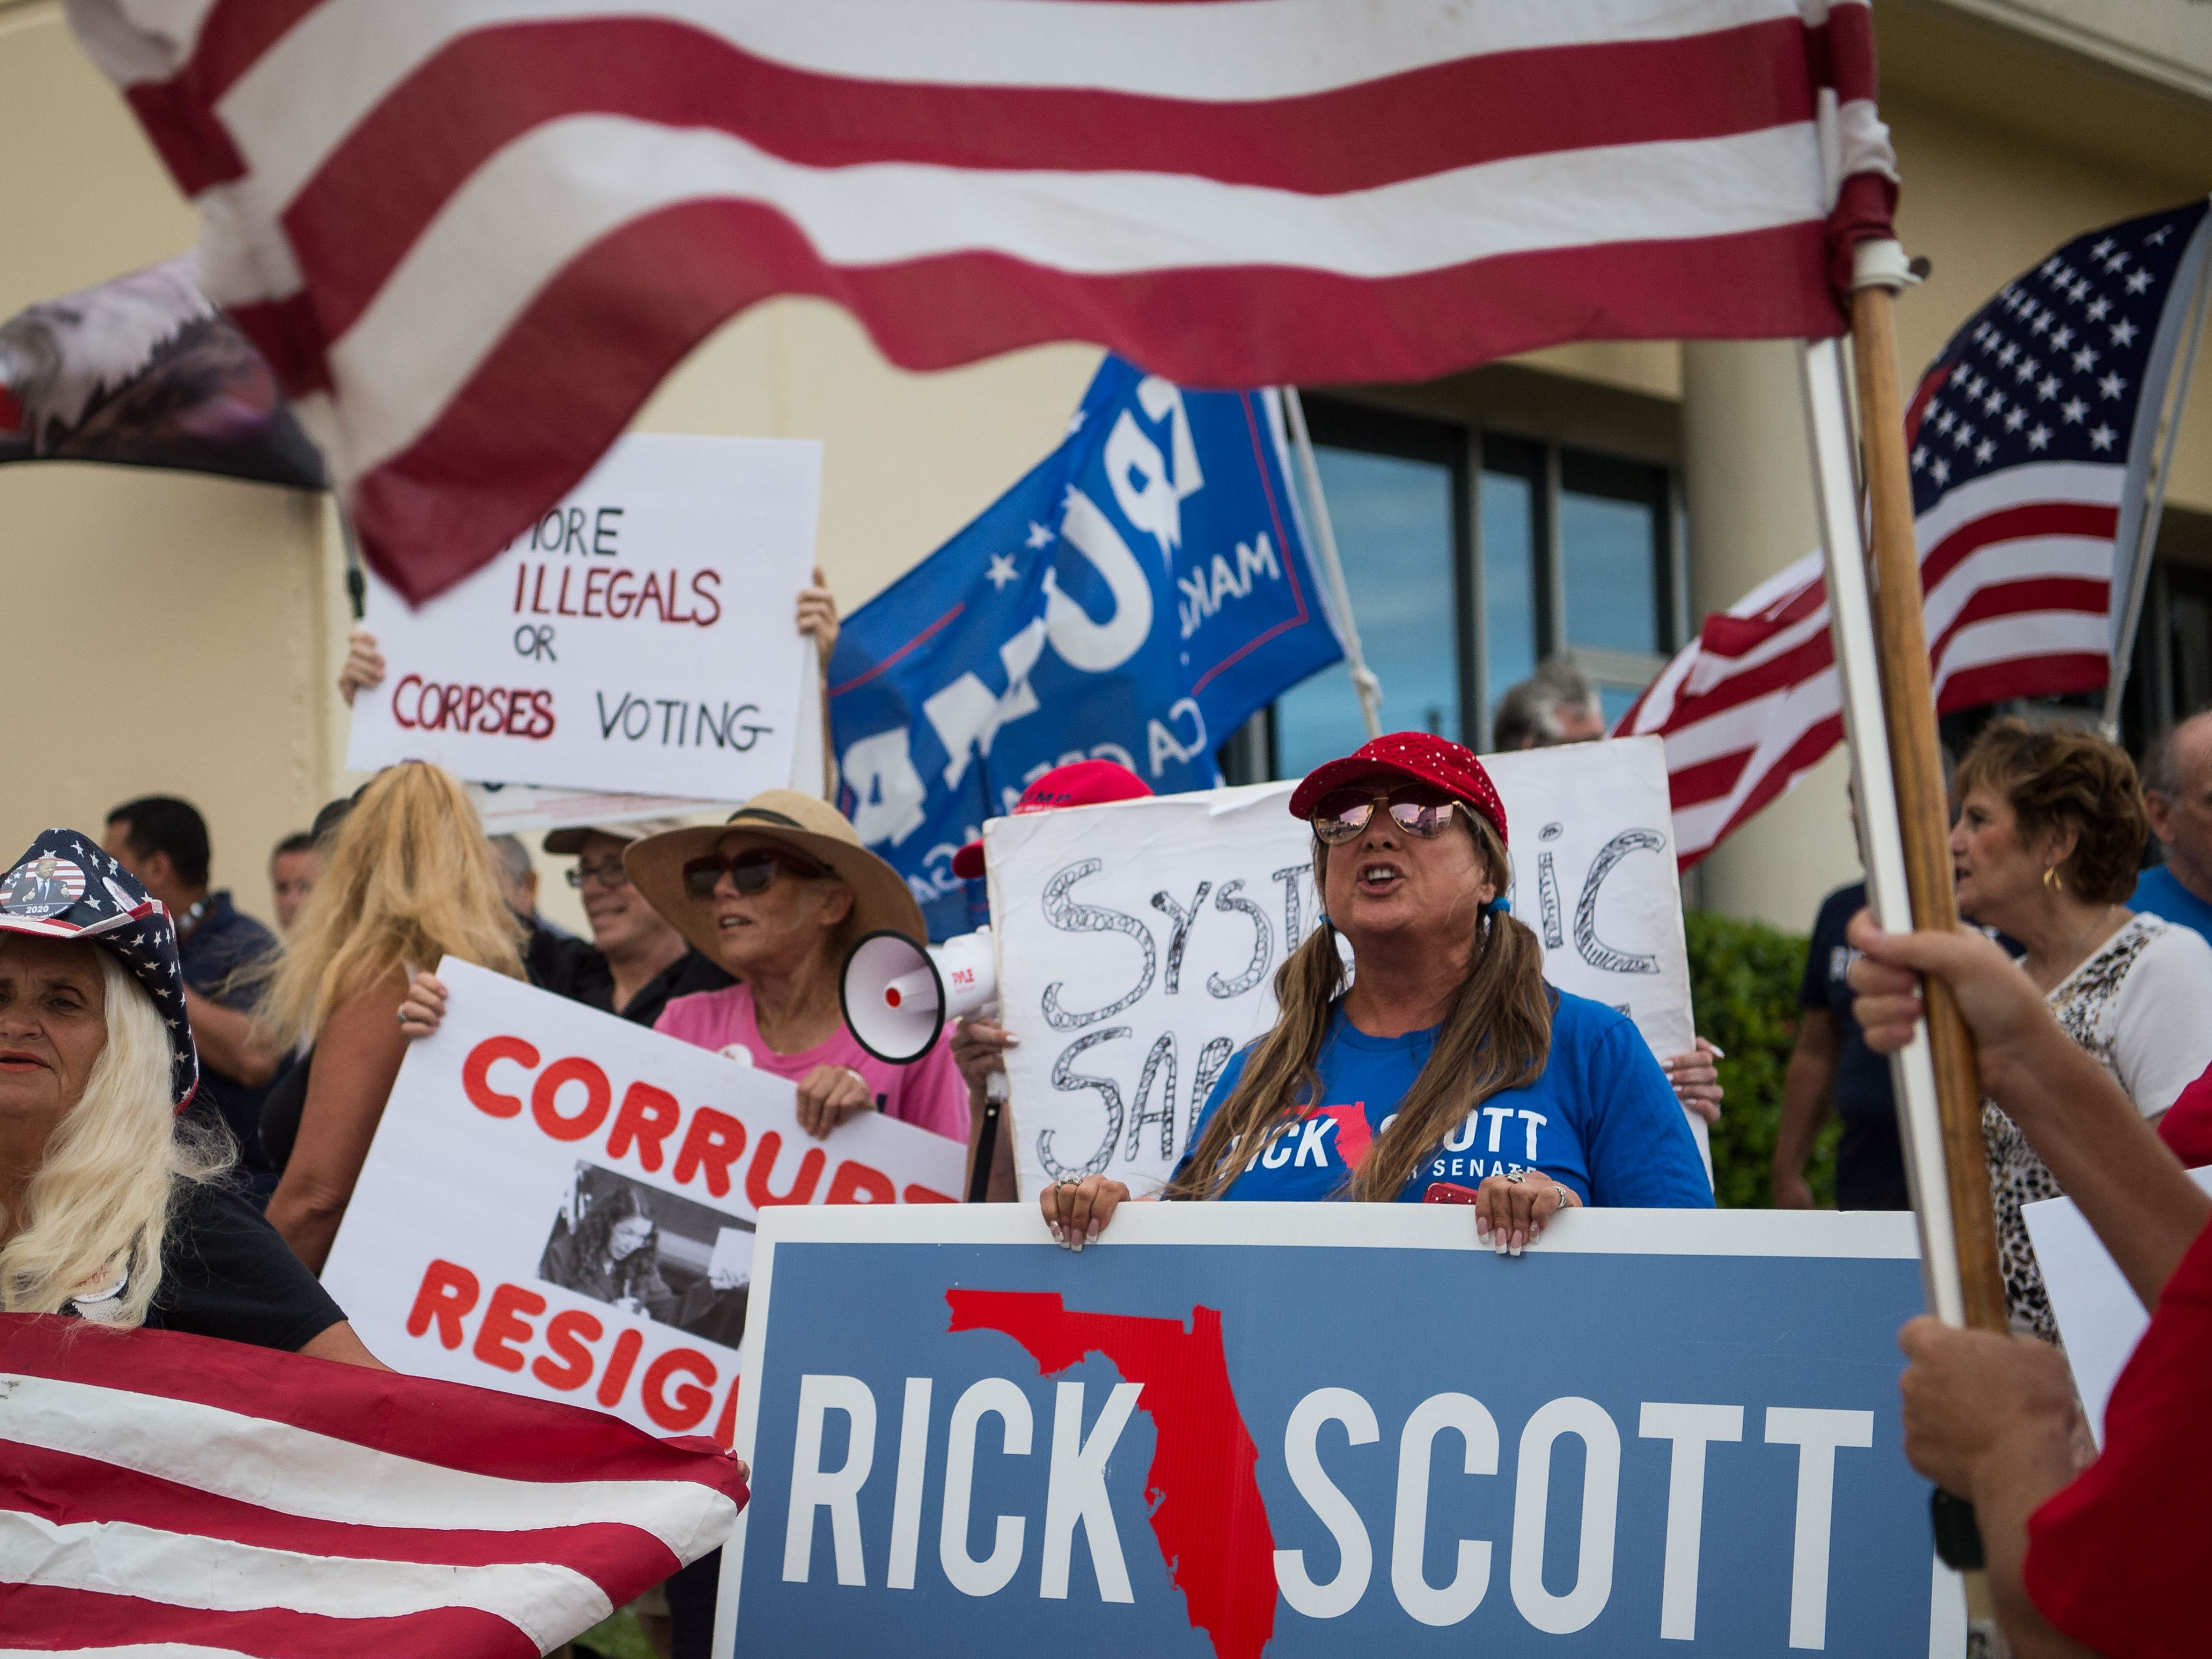 Hilary Sue (right), of Stuart, a poll watcher for several counties, holds a Rick Scott for Senate campaign sign outside the Palm Beach County Supervisor of Elections Service Center in Riviera Beach on Thursday, Nov. 15, 2018, as the recount continues inside under Supervisor of Elections Susan Bucher.